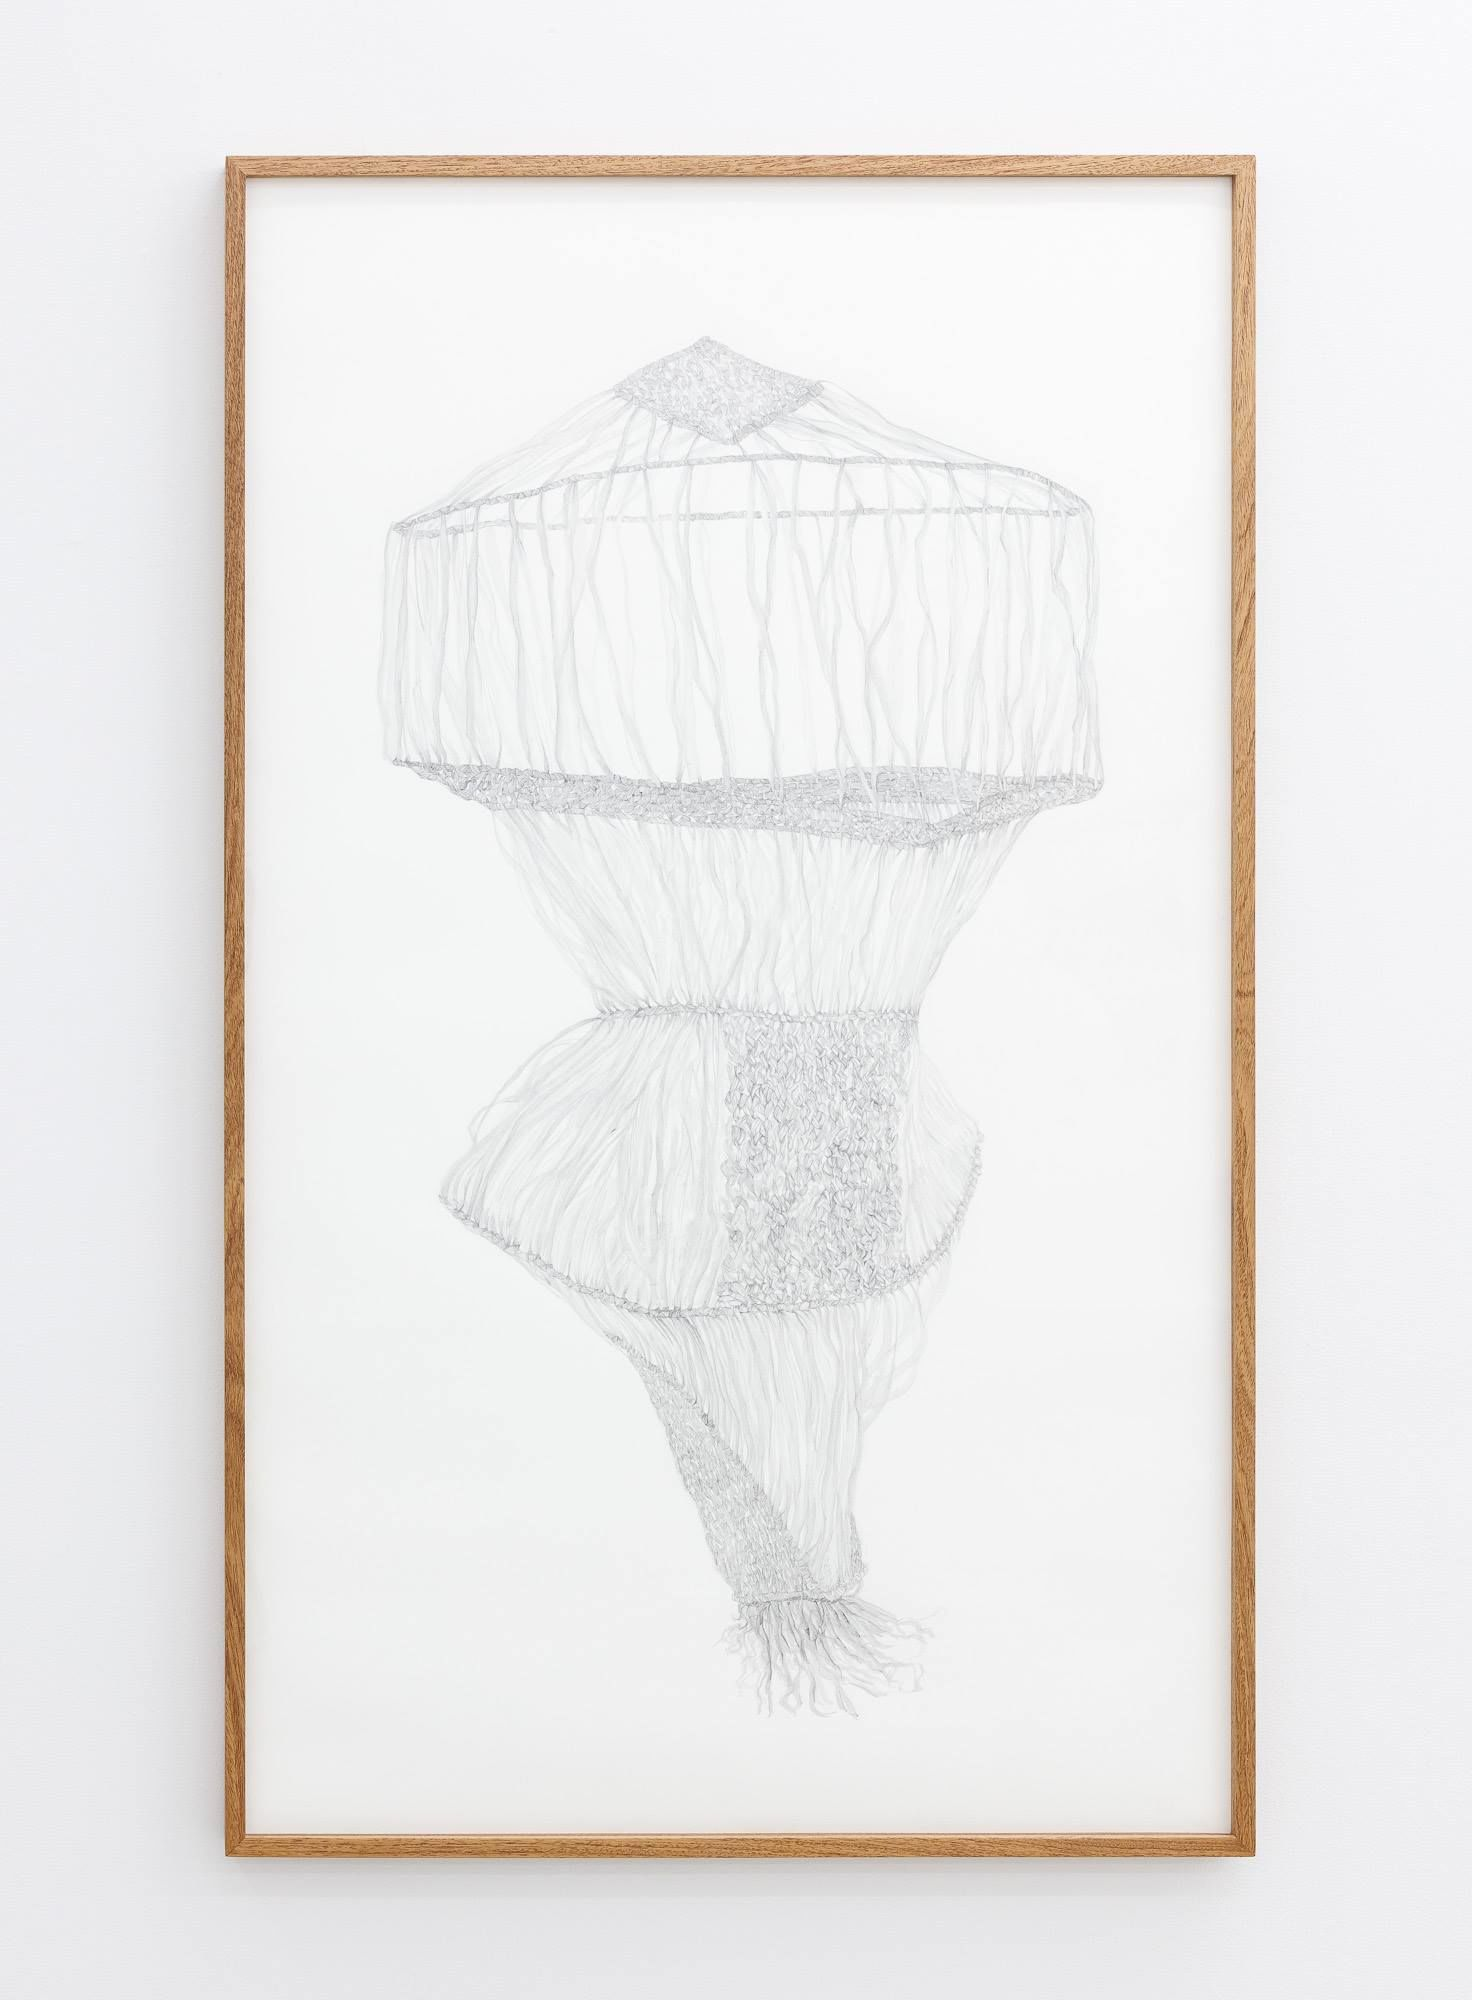 Gala Porras-Kim, One clump of raffia reconstruction, 2016